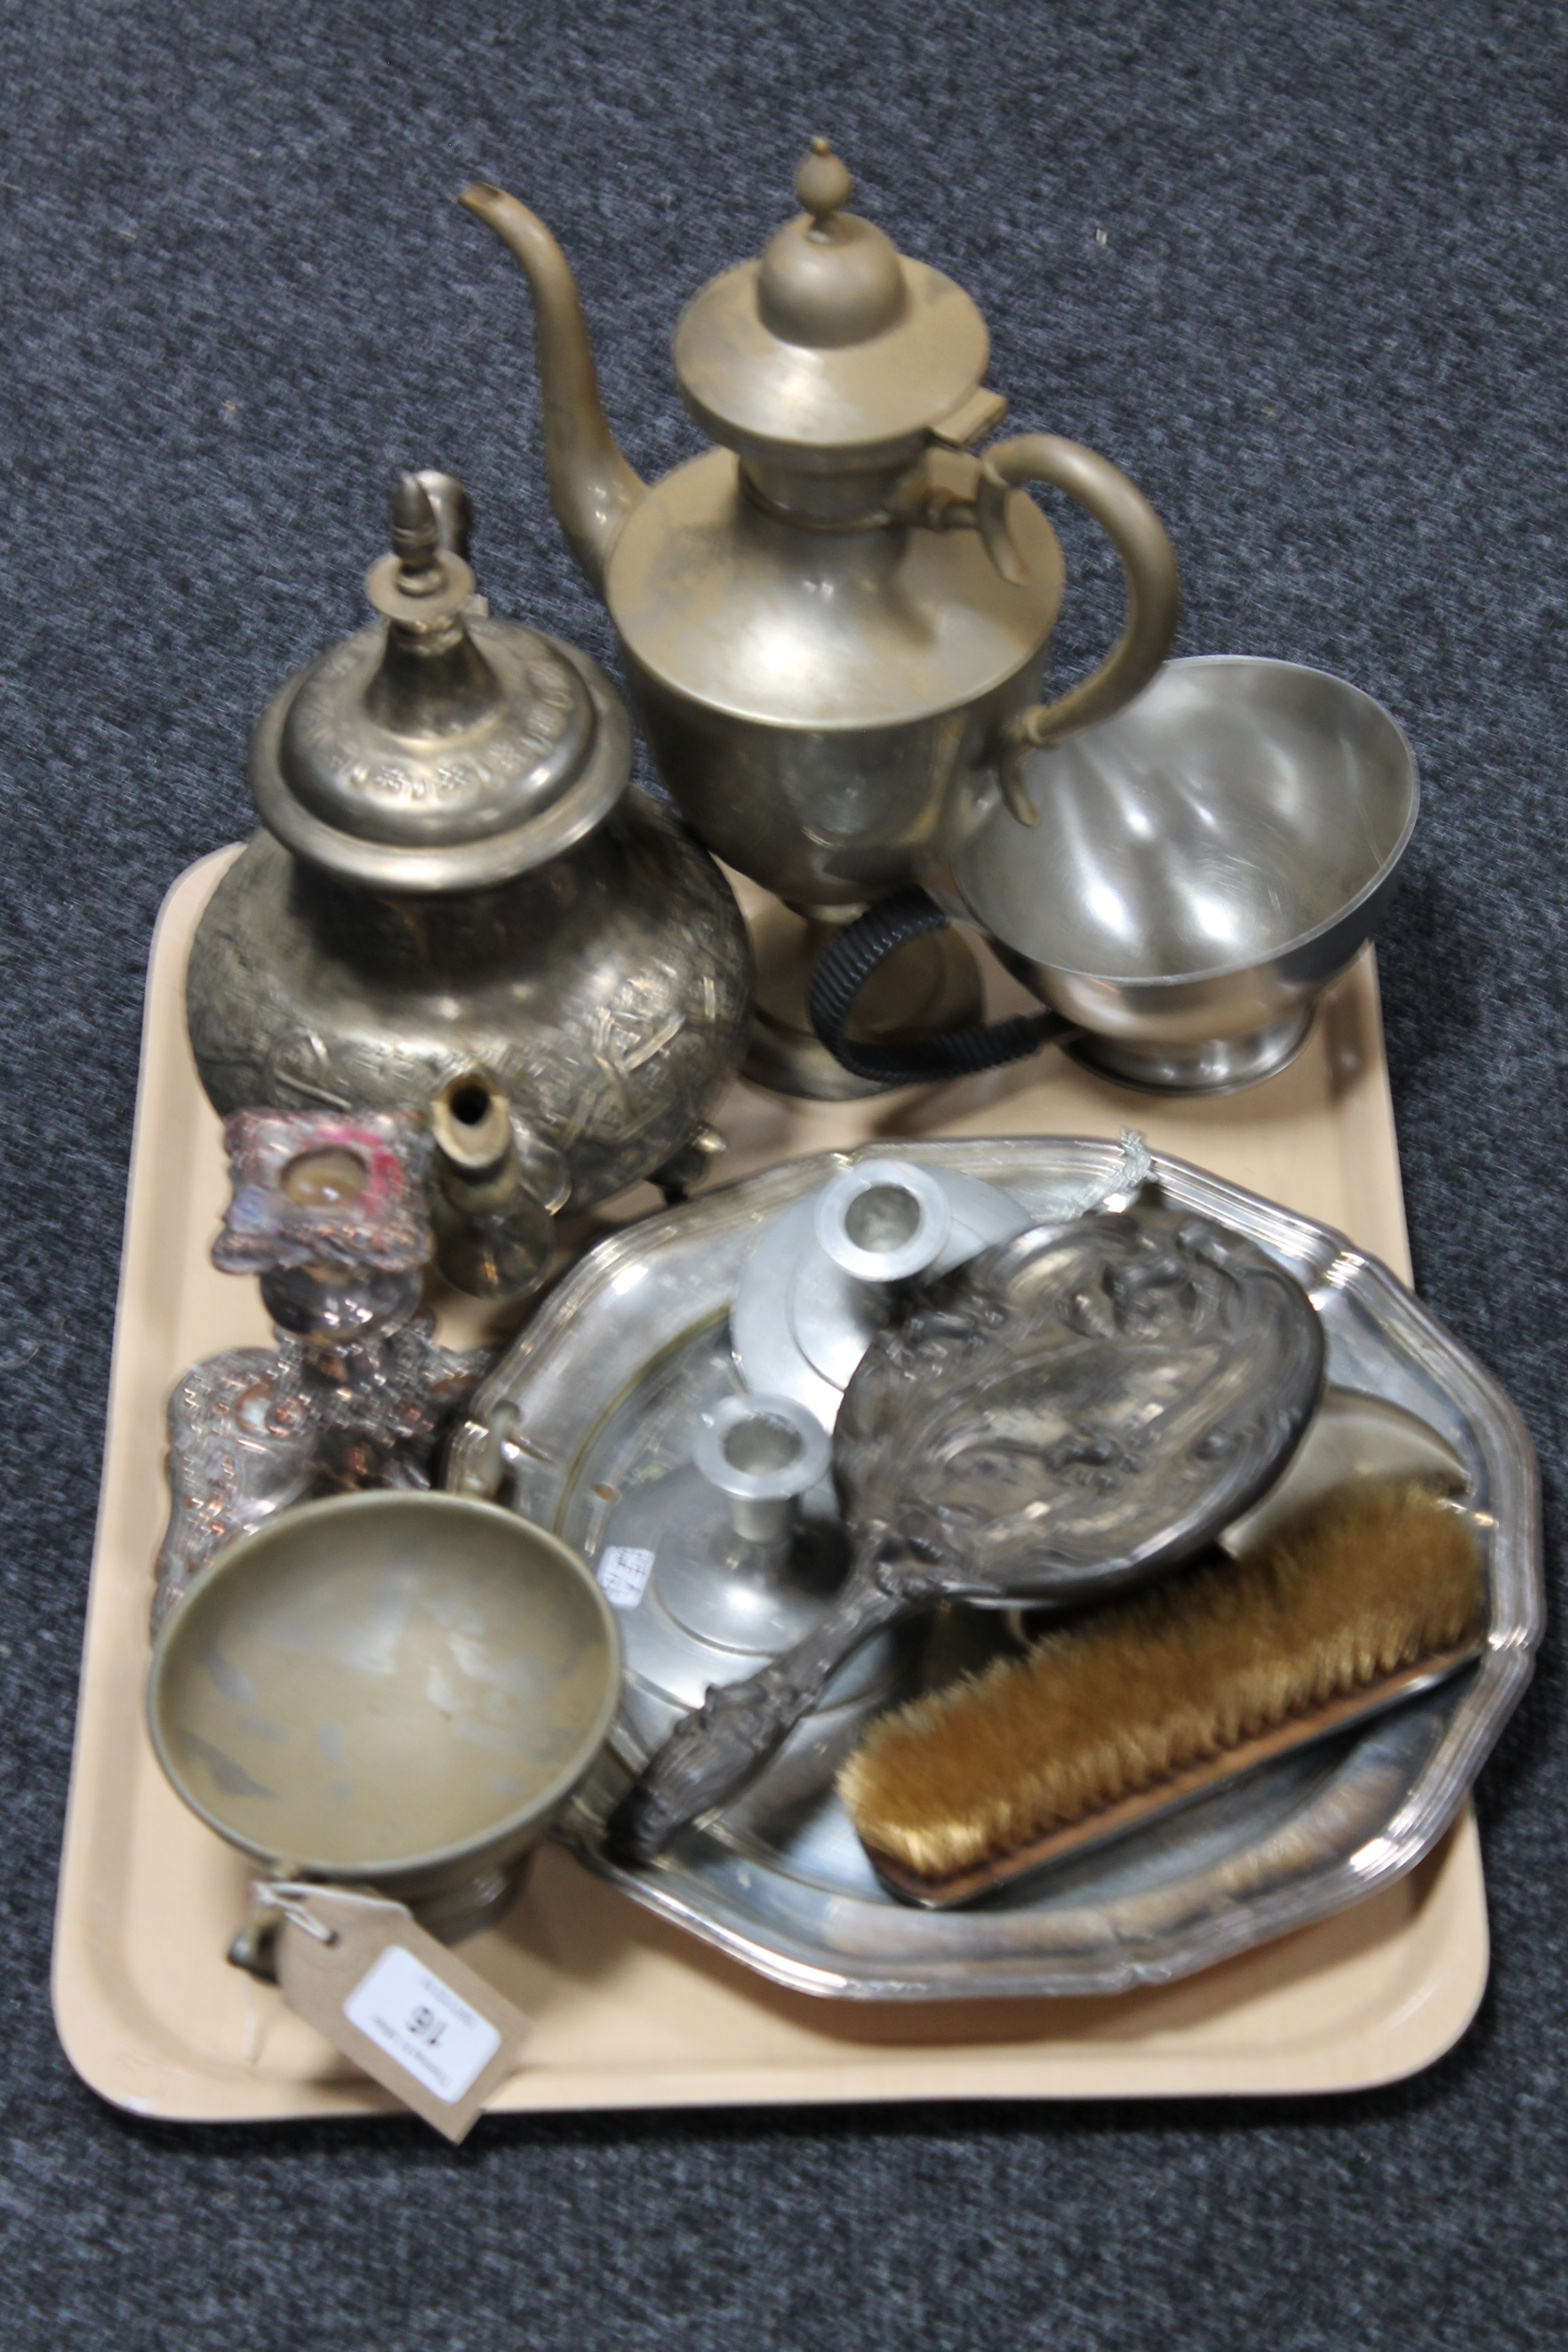 Lot 16 - A tray of twentieth century plated ware including teapots, candlesticks,